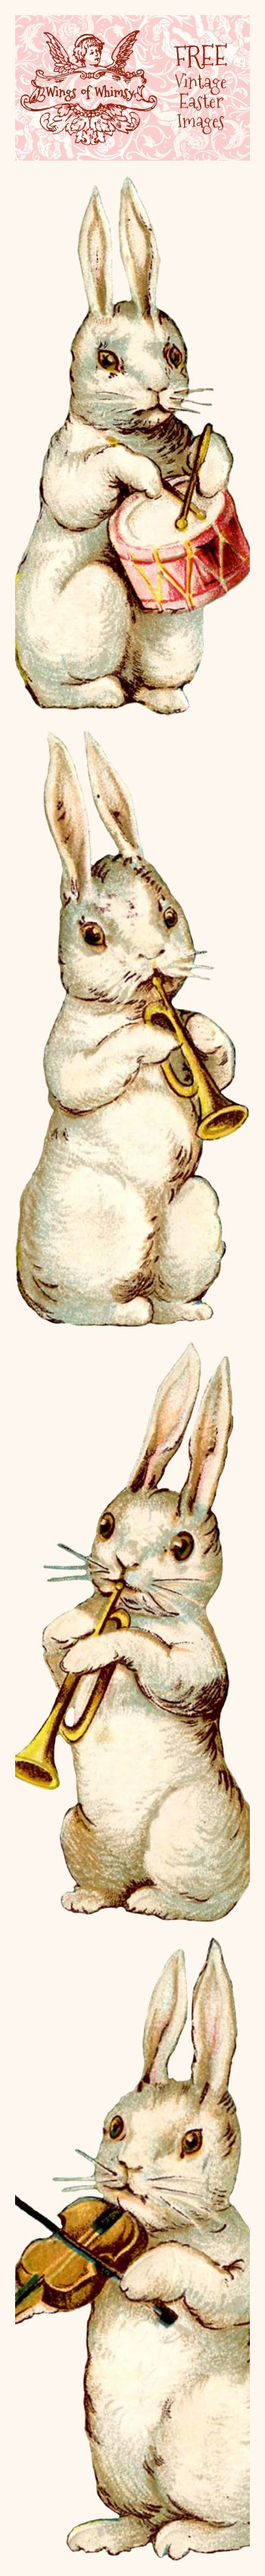 Wings of Whimsy: Vintage Easter Musical Bunnies - PNG (transparent background)